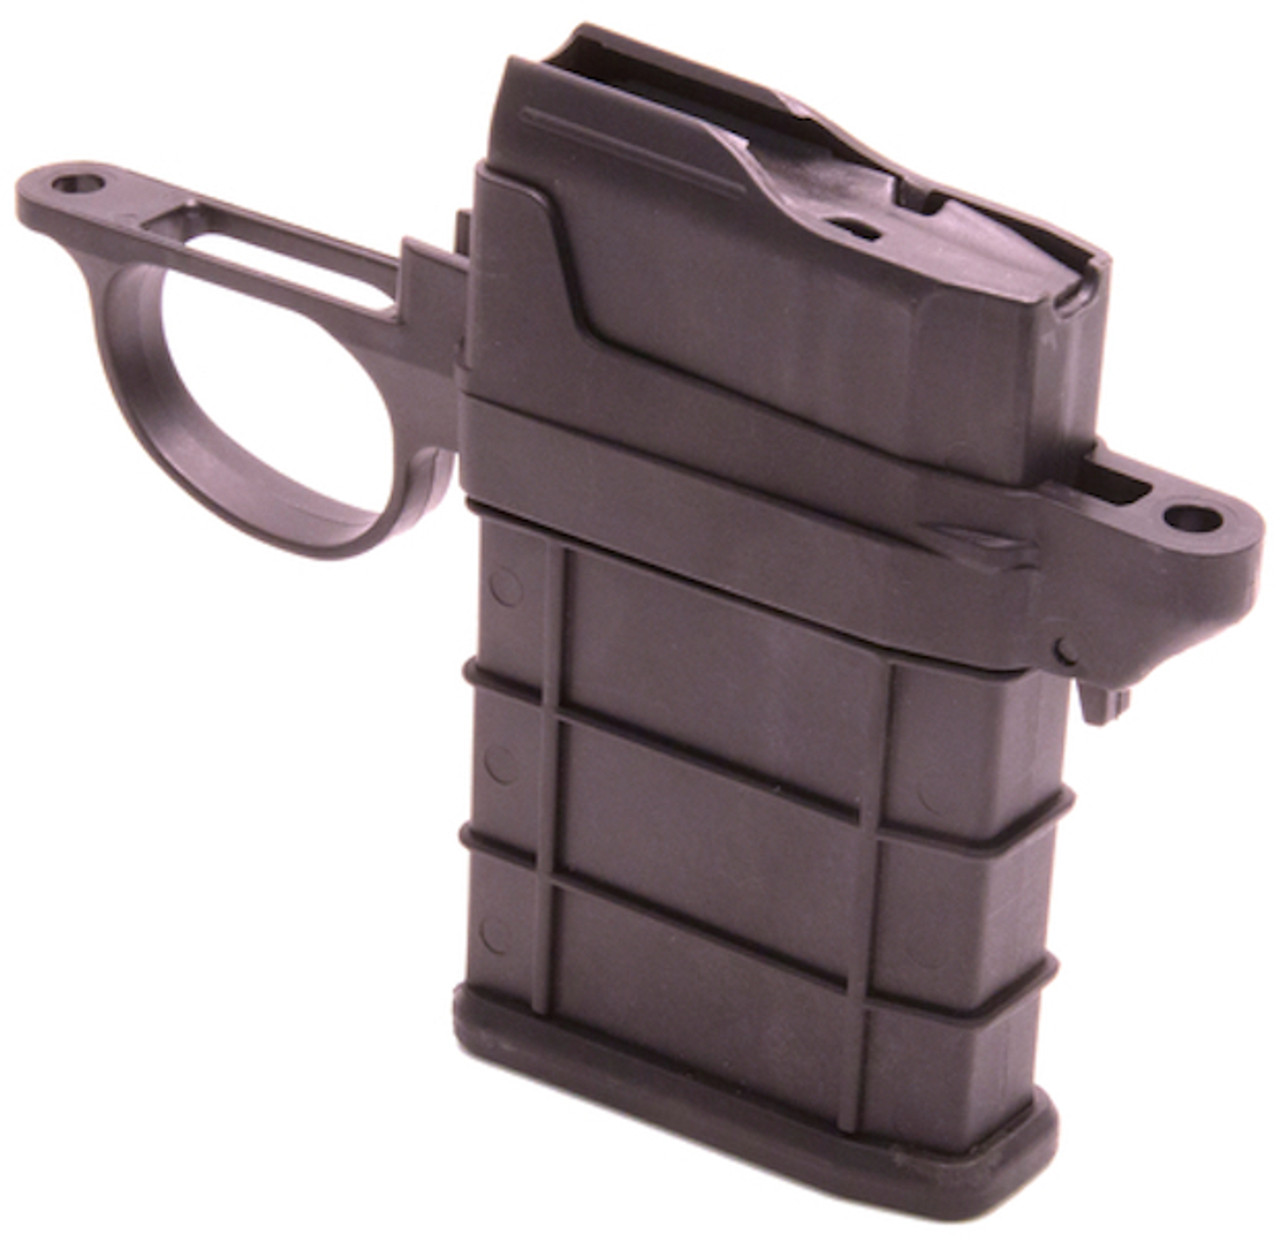 Howa 10 Round Magazine Conversion Kit for Remington 700 243 308 7mm-08